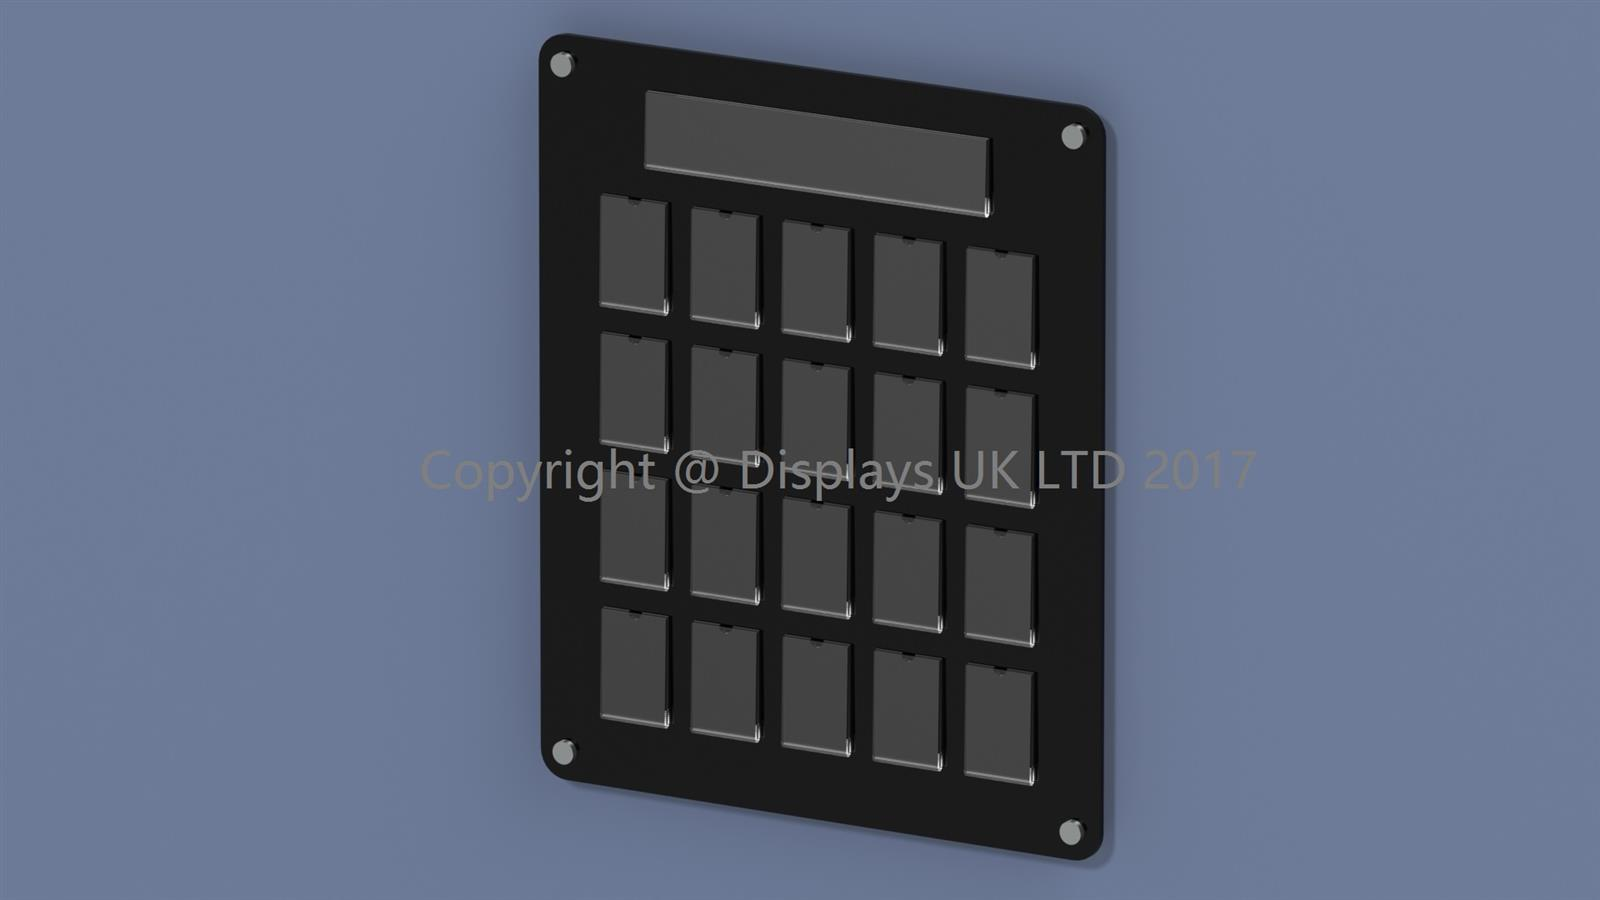 20 pocket staff photo board manufactured from Perspex acrylic. Perfect for schools colleges universities and business